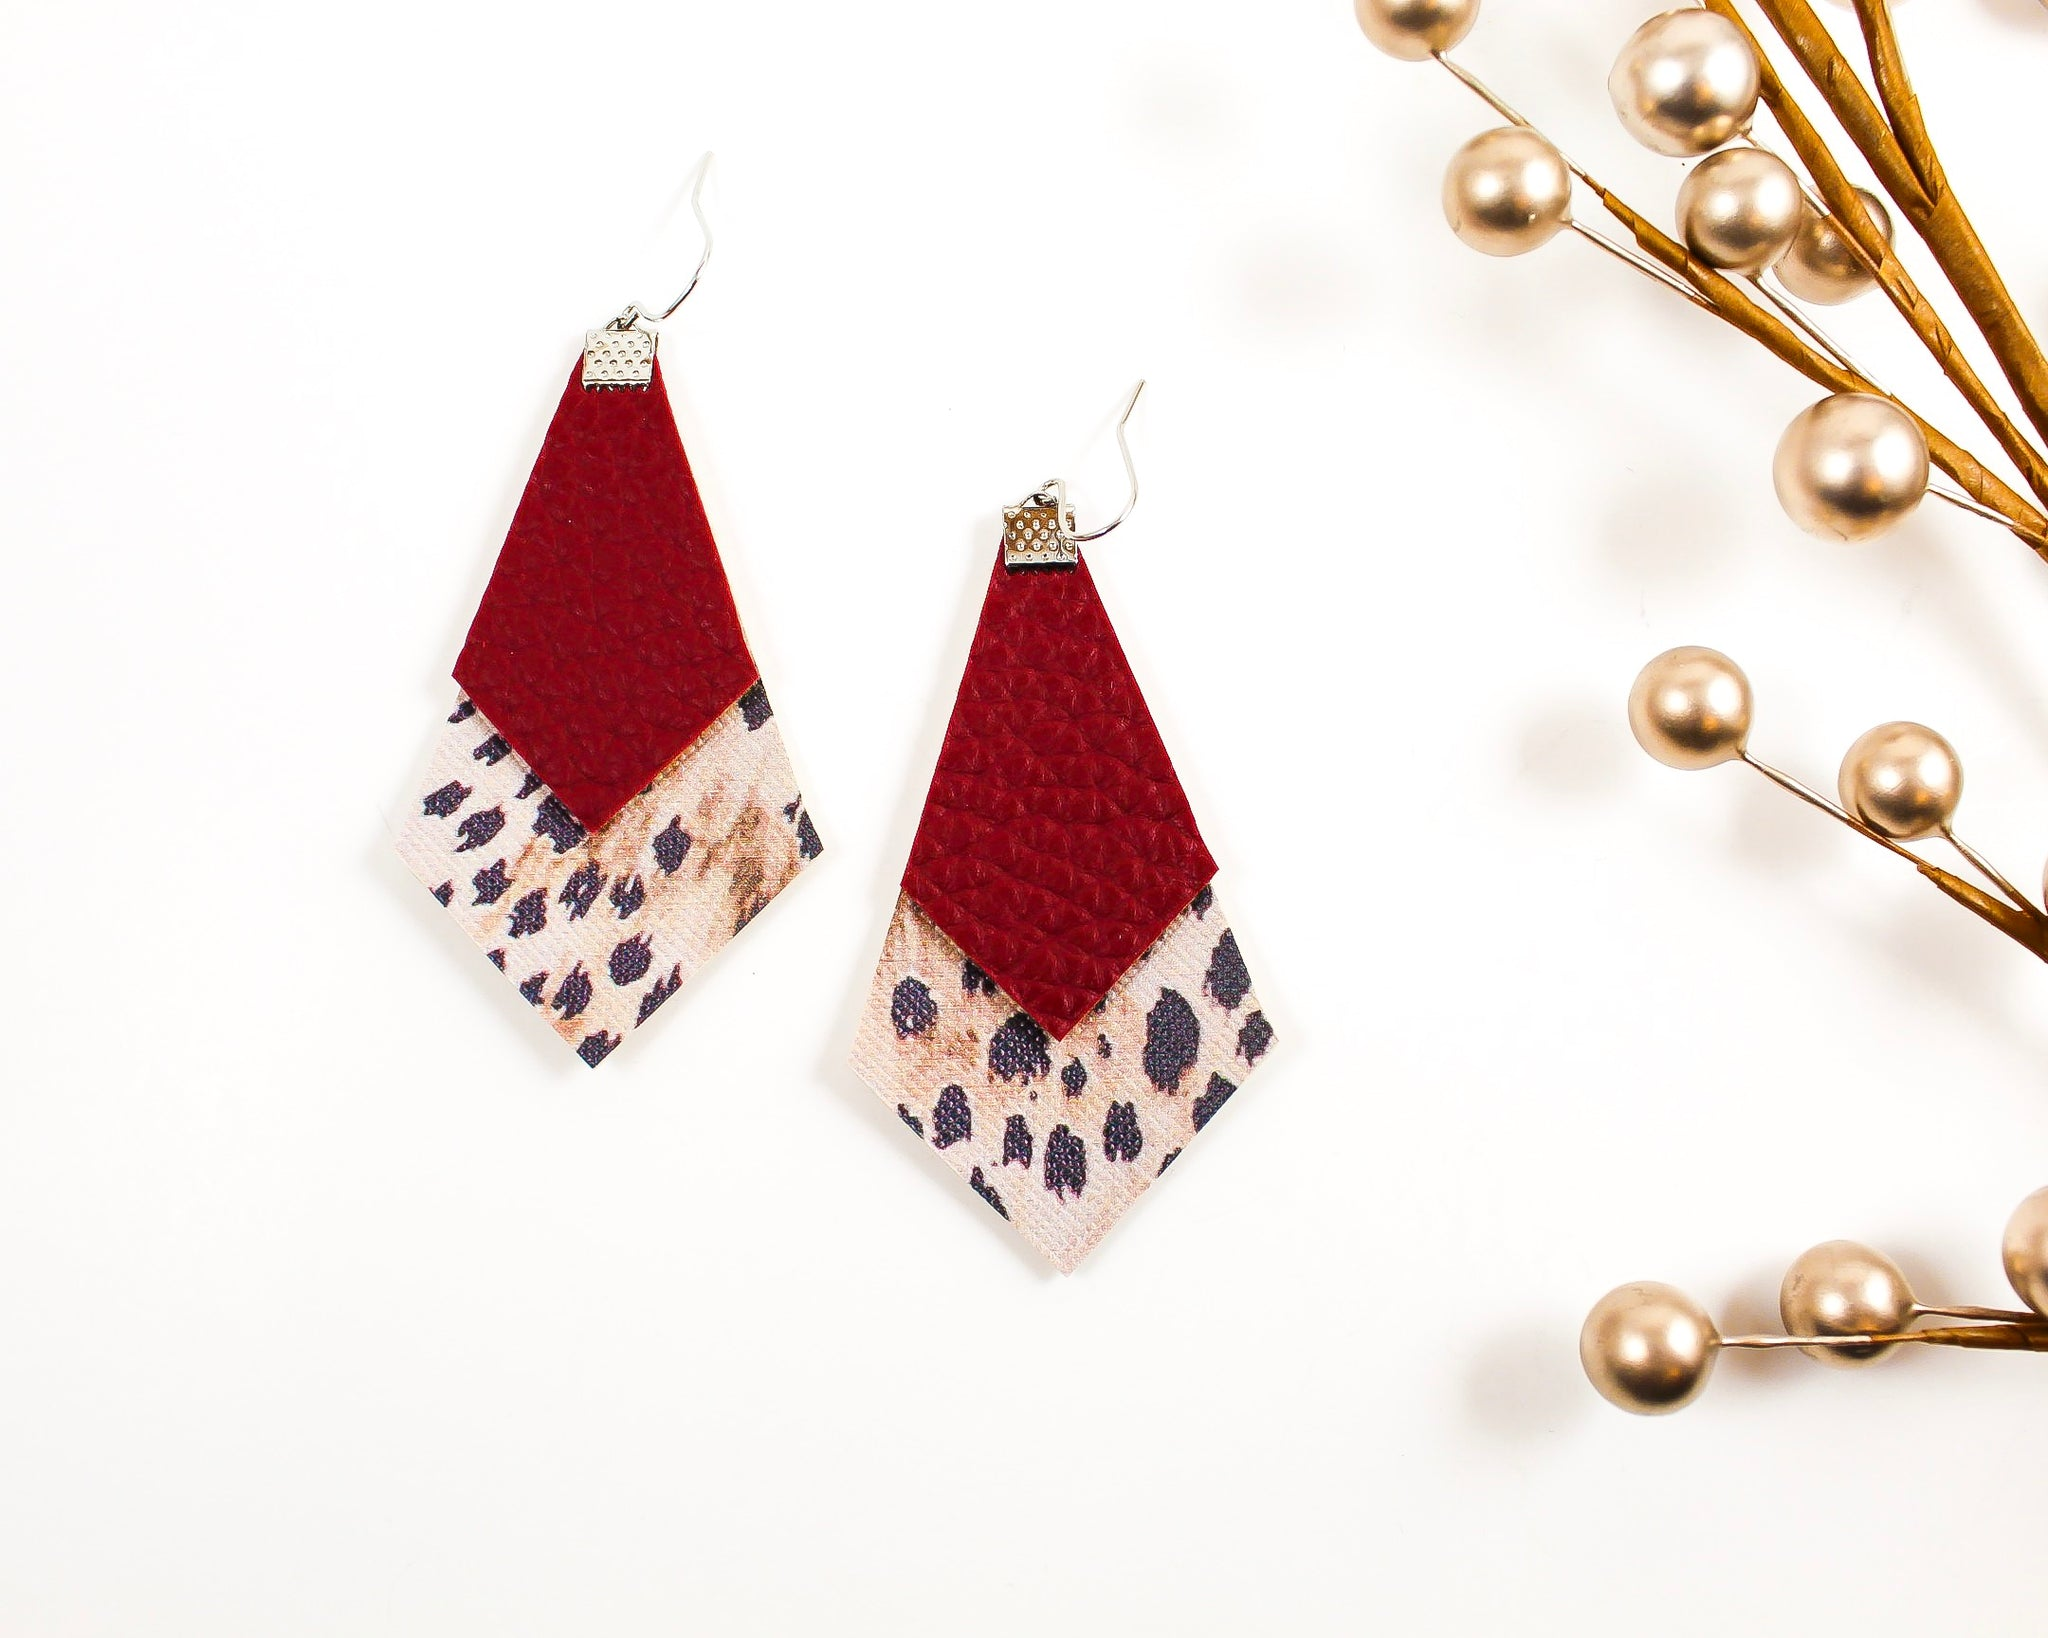 Burgundy & Cheetah Print Long Diamond Earrings